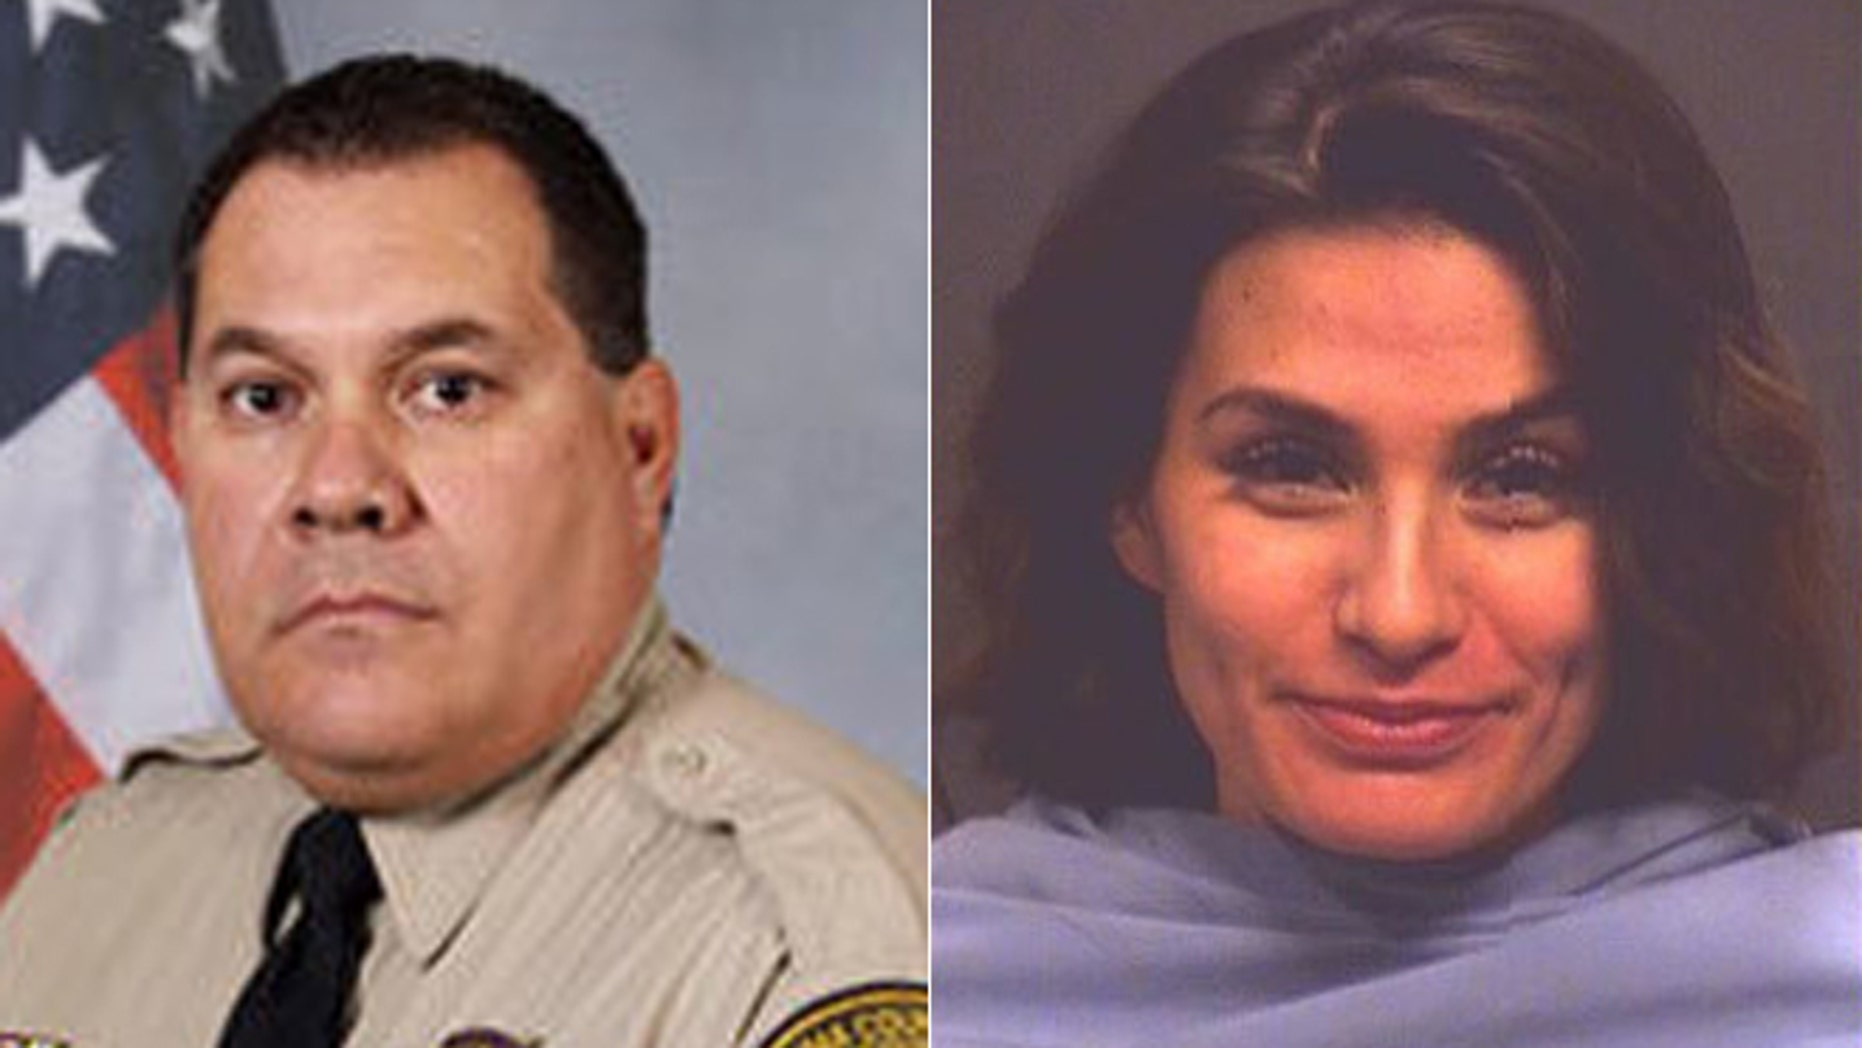 Yesennia Gonzalez, right, was accused of engaging in the struggle that left Traffic Unit Sgt. Mark Bustamante without his left eye.